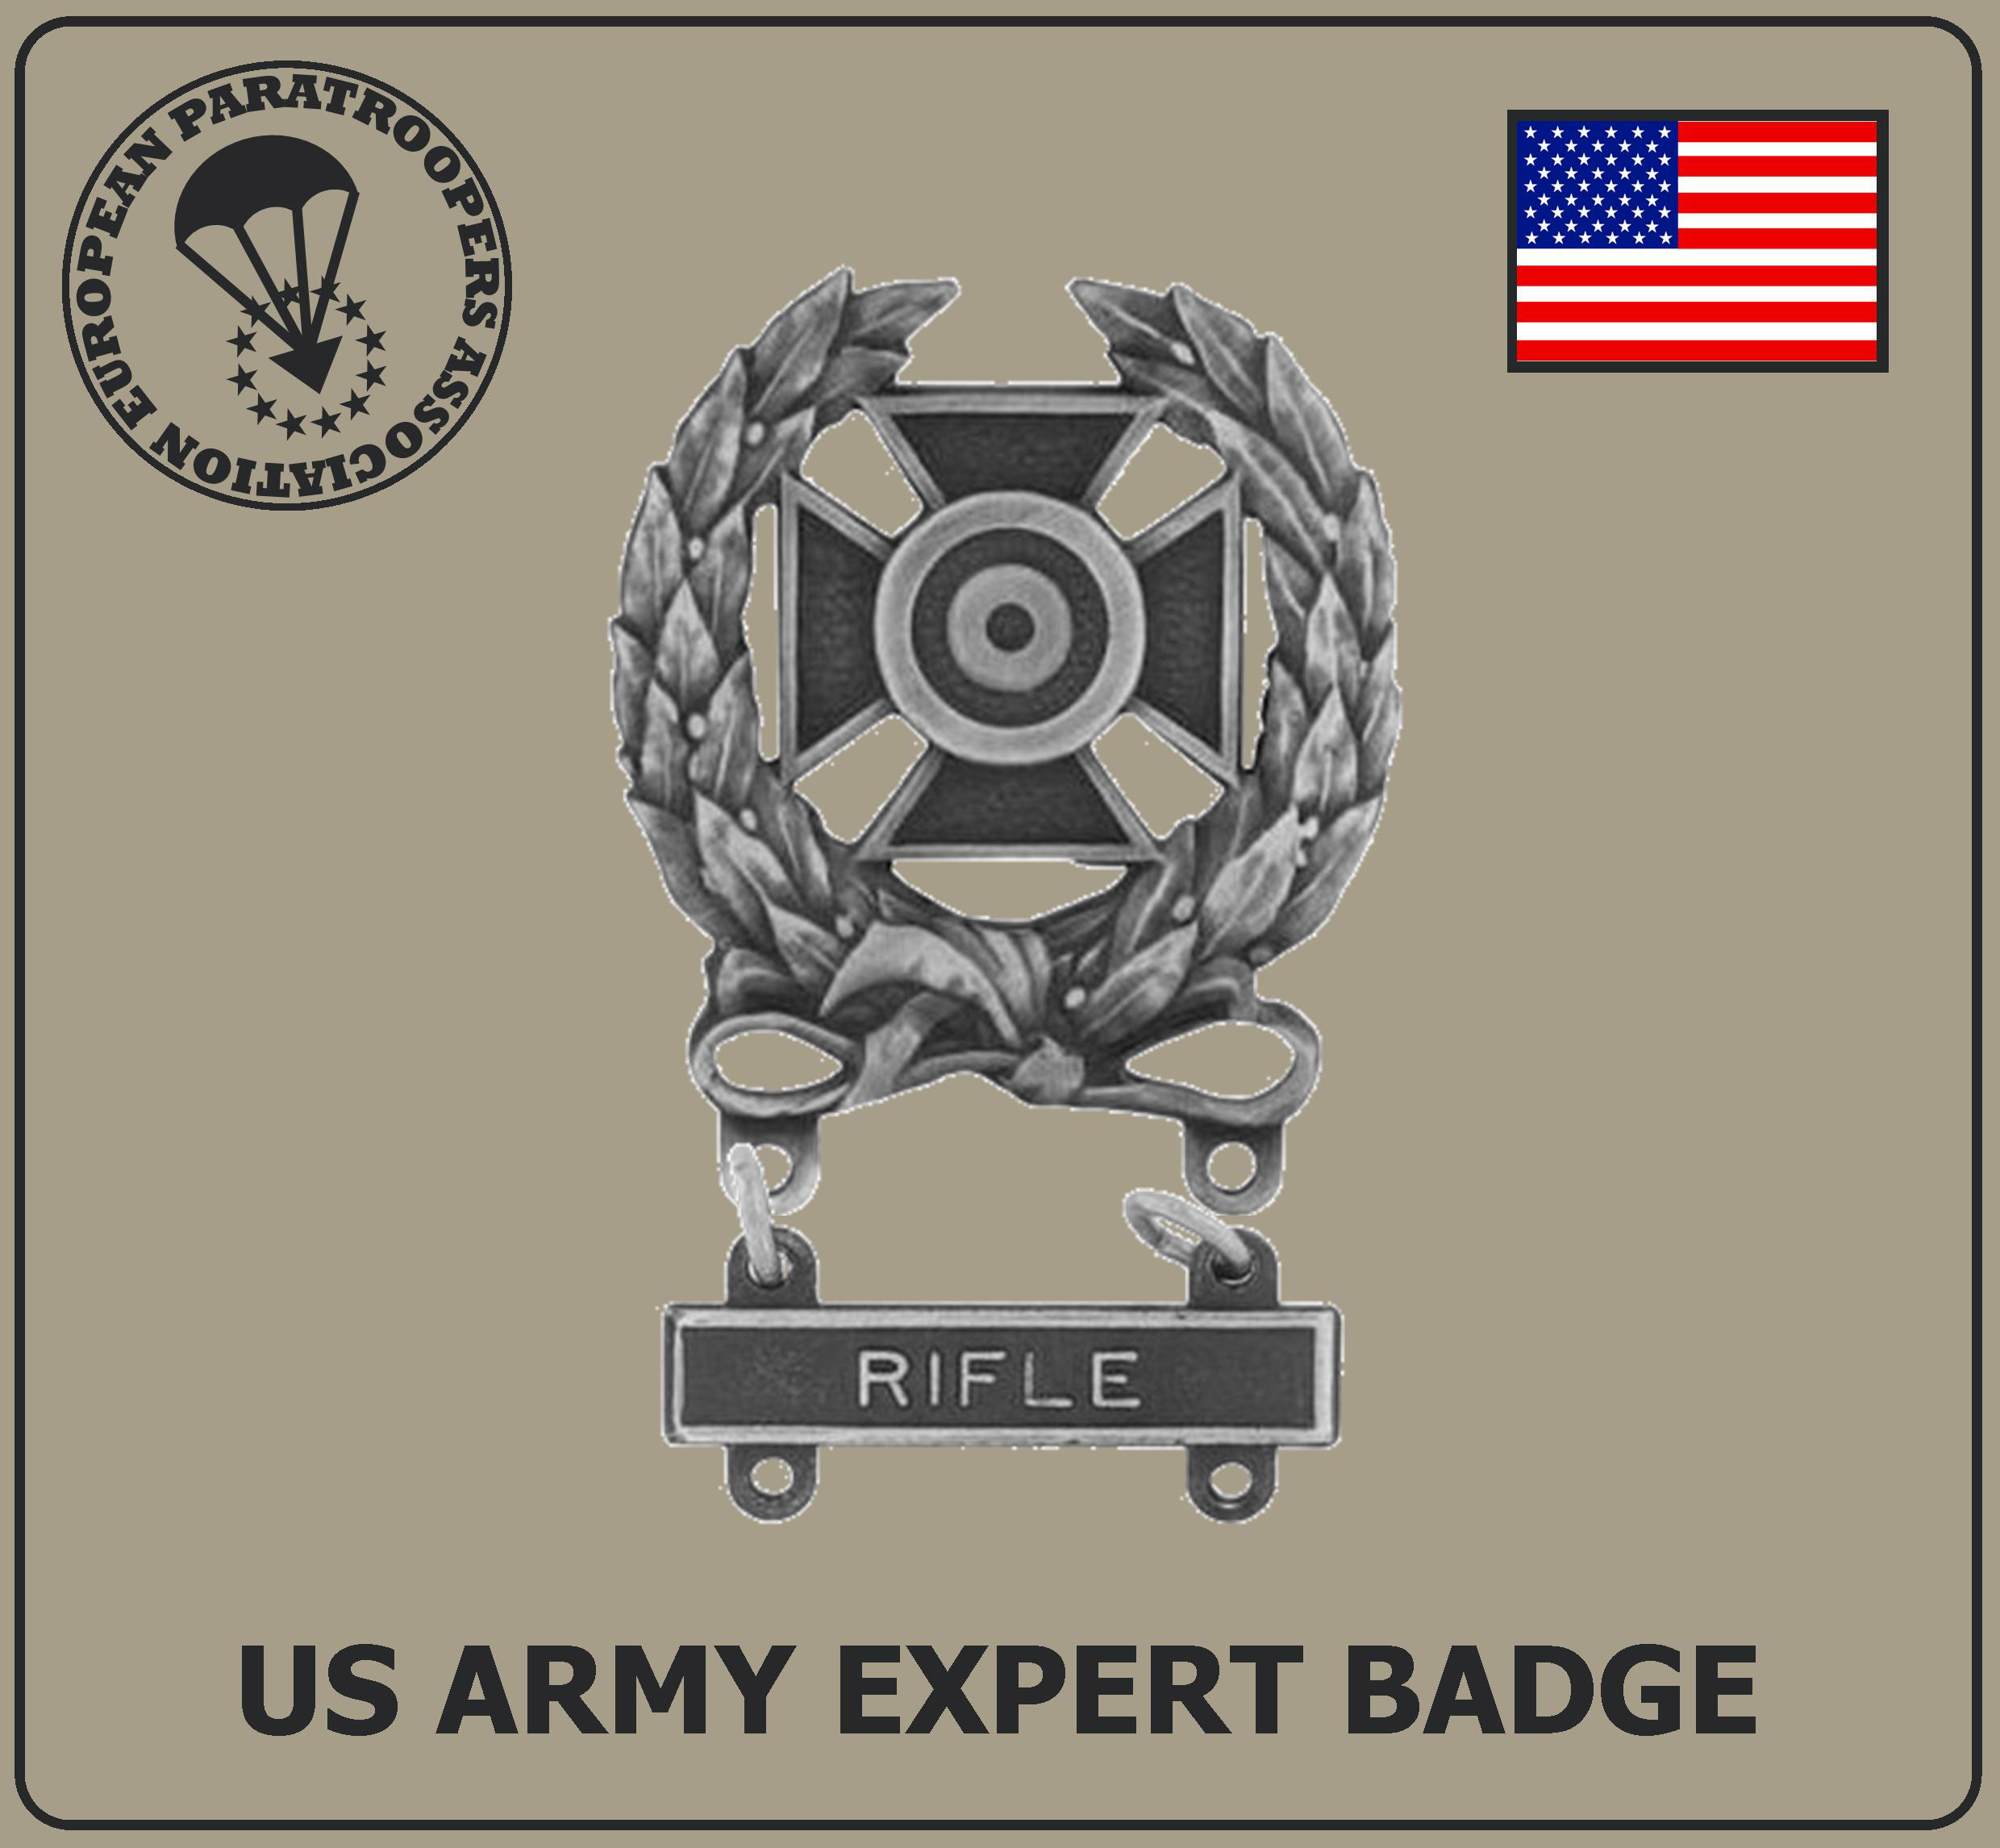 US ARMY EXPERT BADGE R